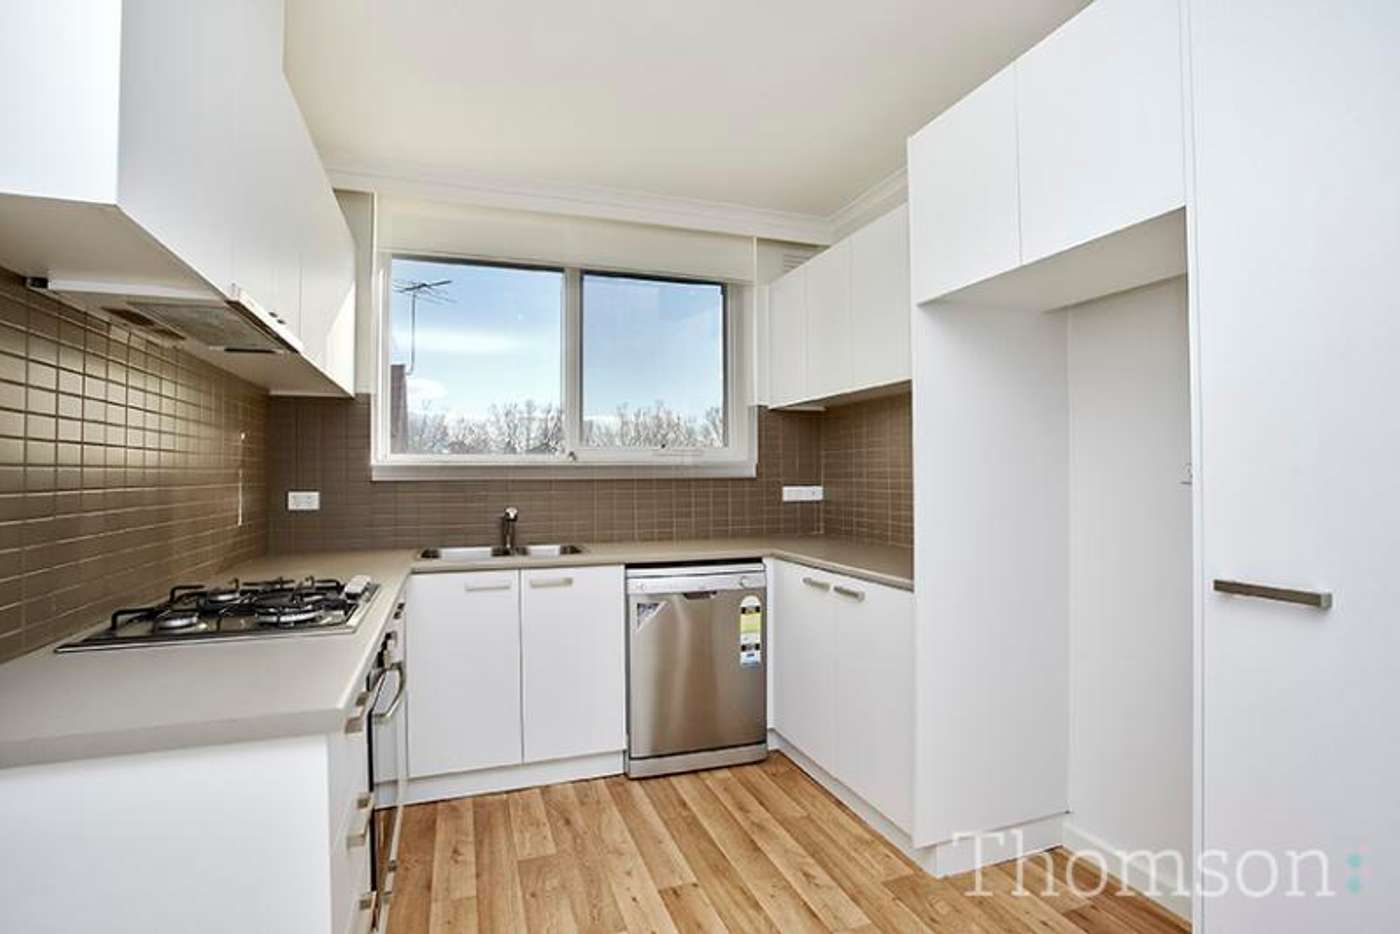 Main view of Homely apartment listing, 5/11 Hope Street, Glen Iris VIC 3146